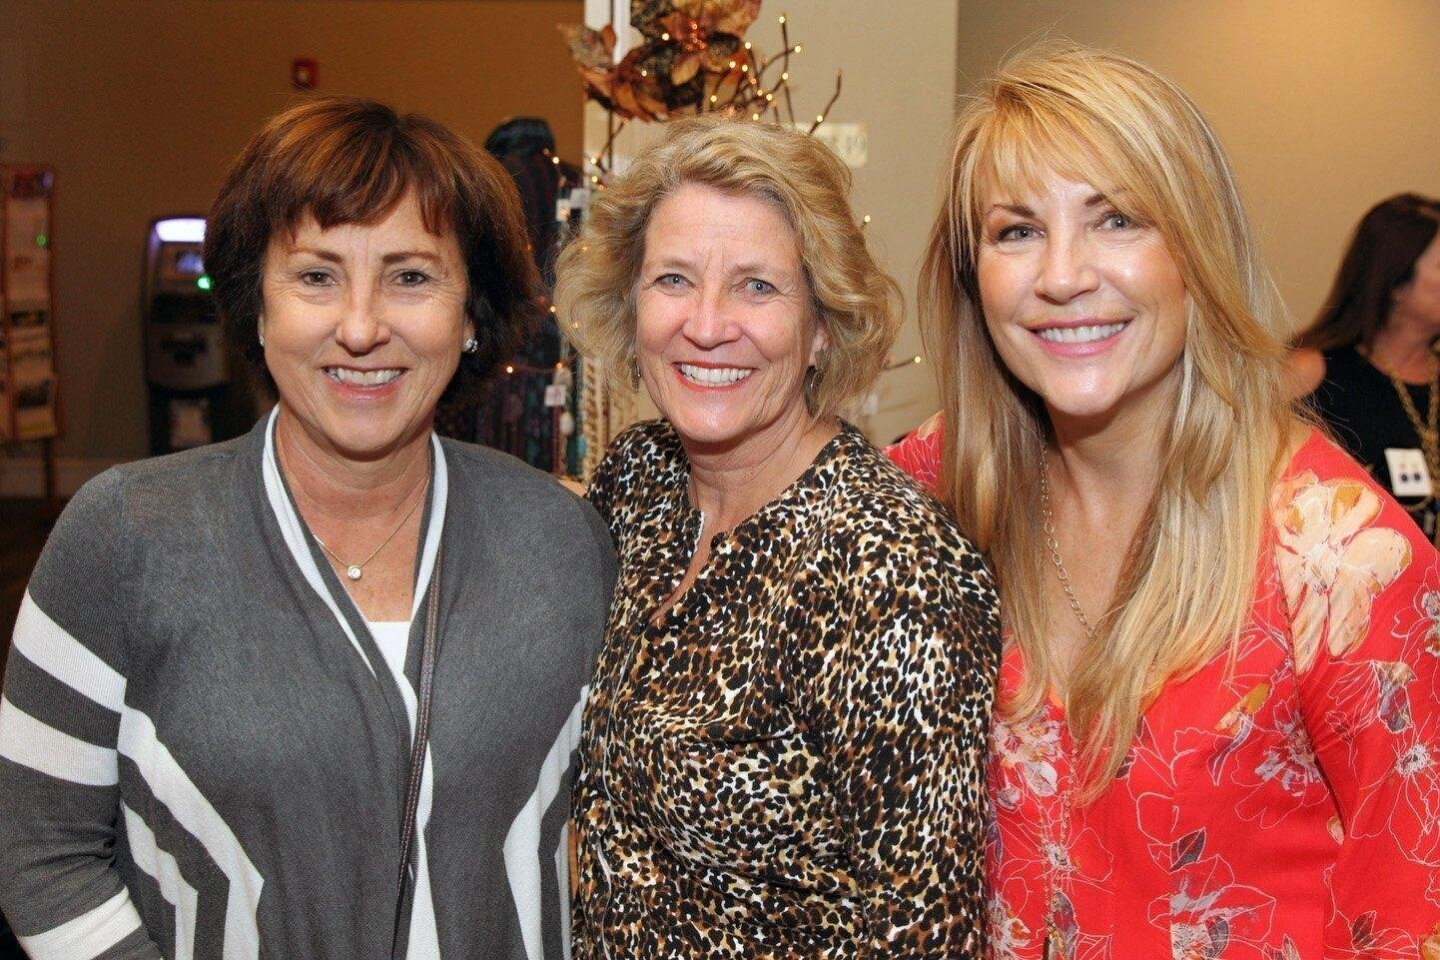 Kelly Coleman, Christina Dworsky, Susan Darvall (Unit Co-Chair)